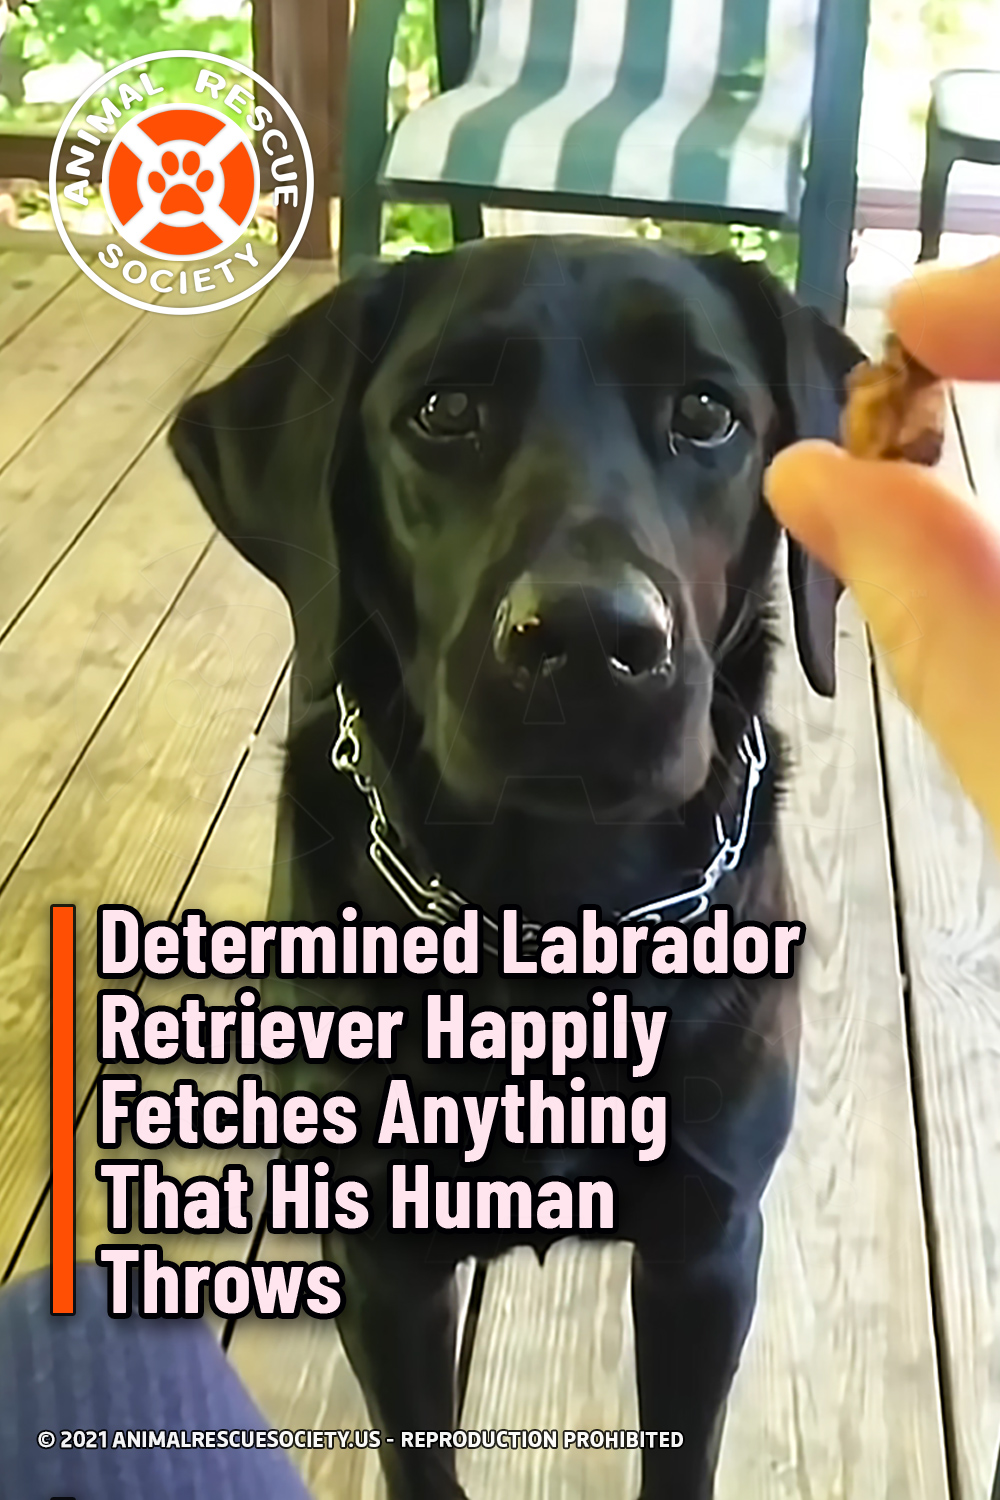 Determined Labrador Retriever Happily Fetches Anything That His Human Throws